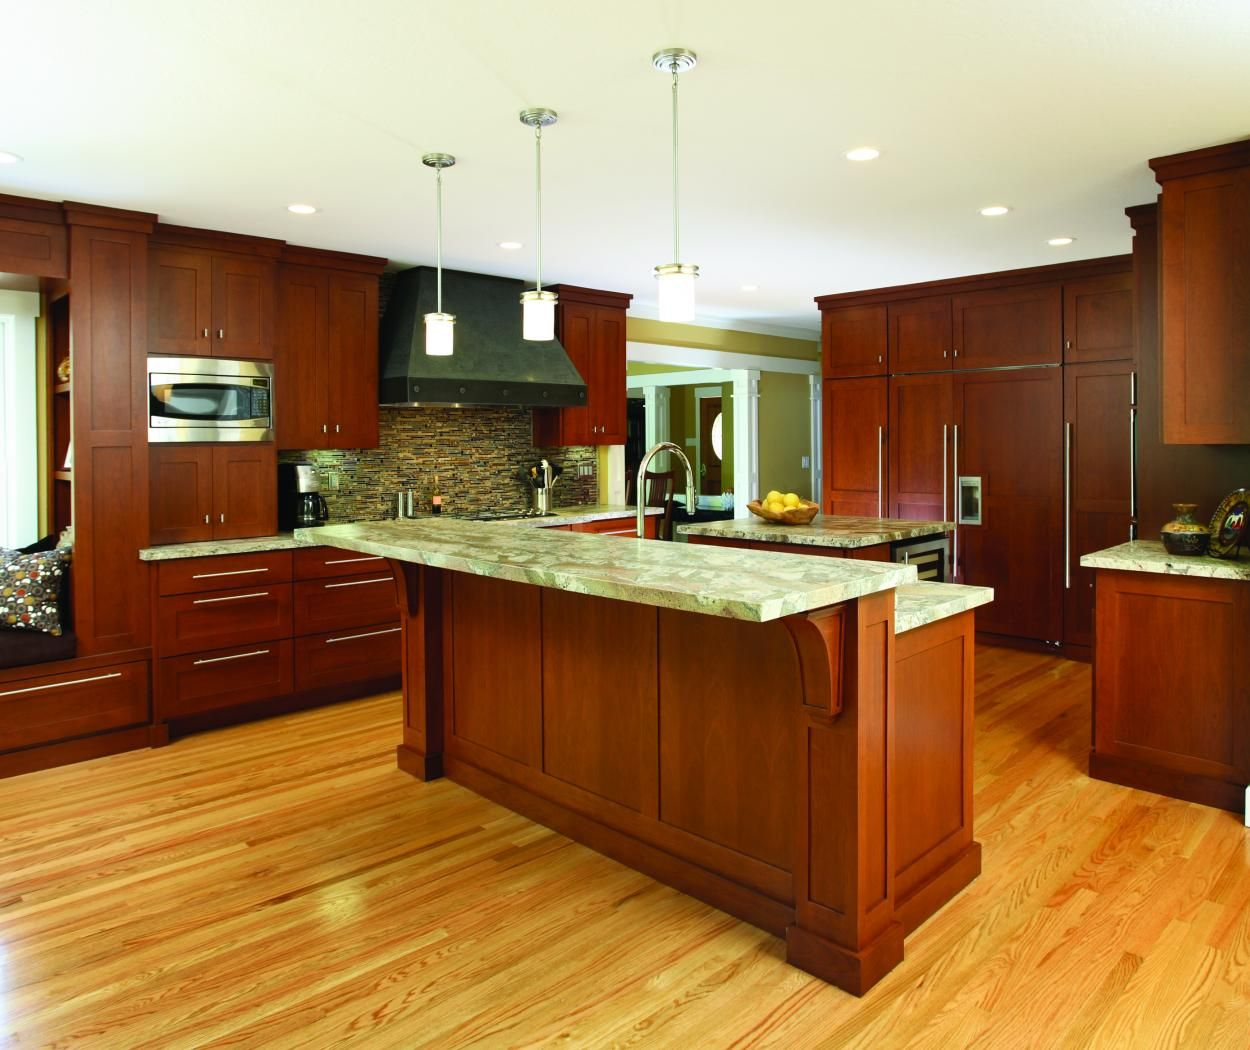 Precision Cabinets Brentwood CA KCMA Eco Friendly / Sustainable Cabinets